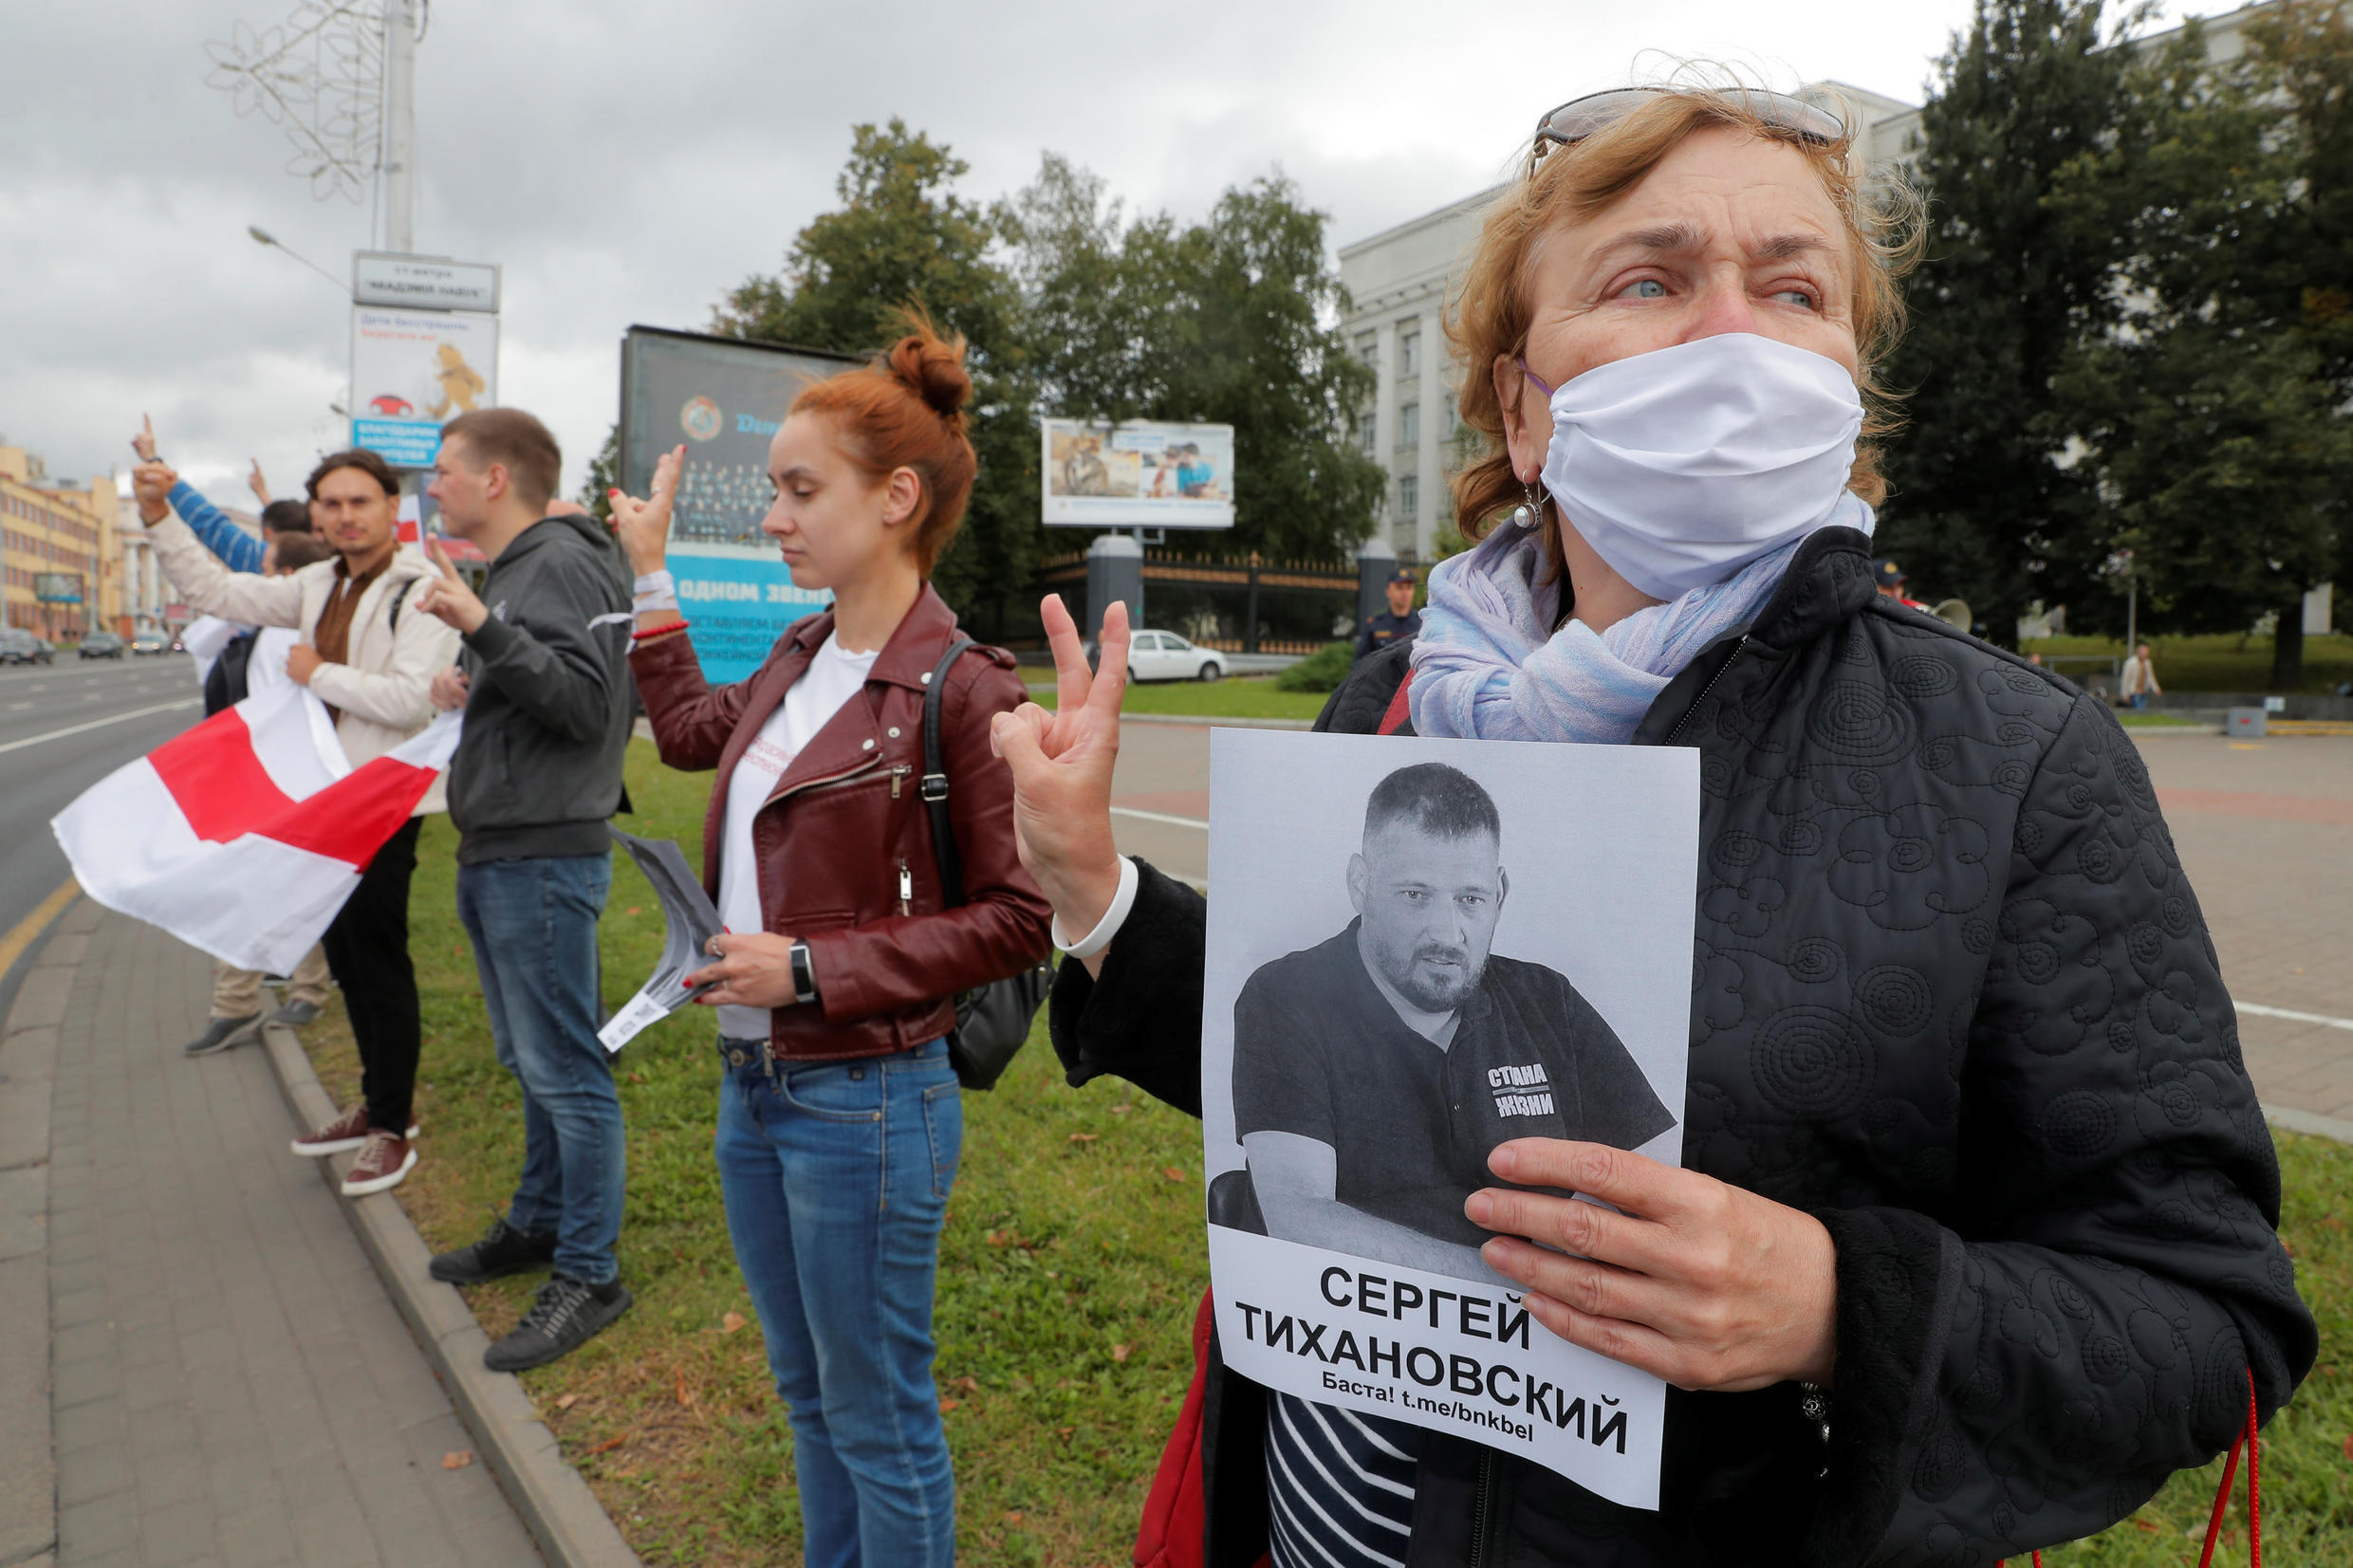 2020-08-27T110009Z_1690924614_RC2BMI9CY5MB_RTRMADP_3_BELARUS-ELECTION-PROTESTS